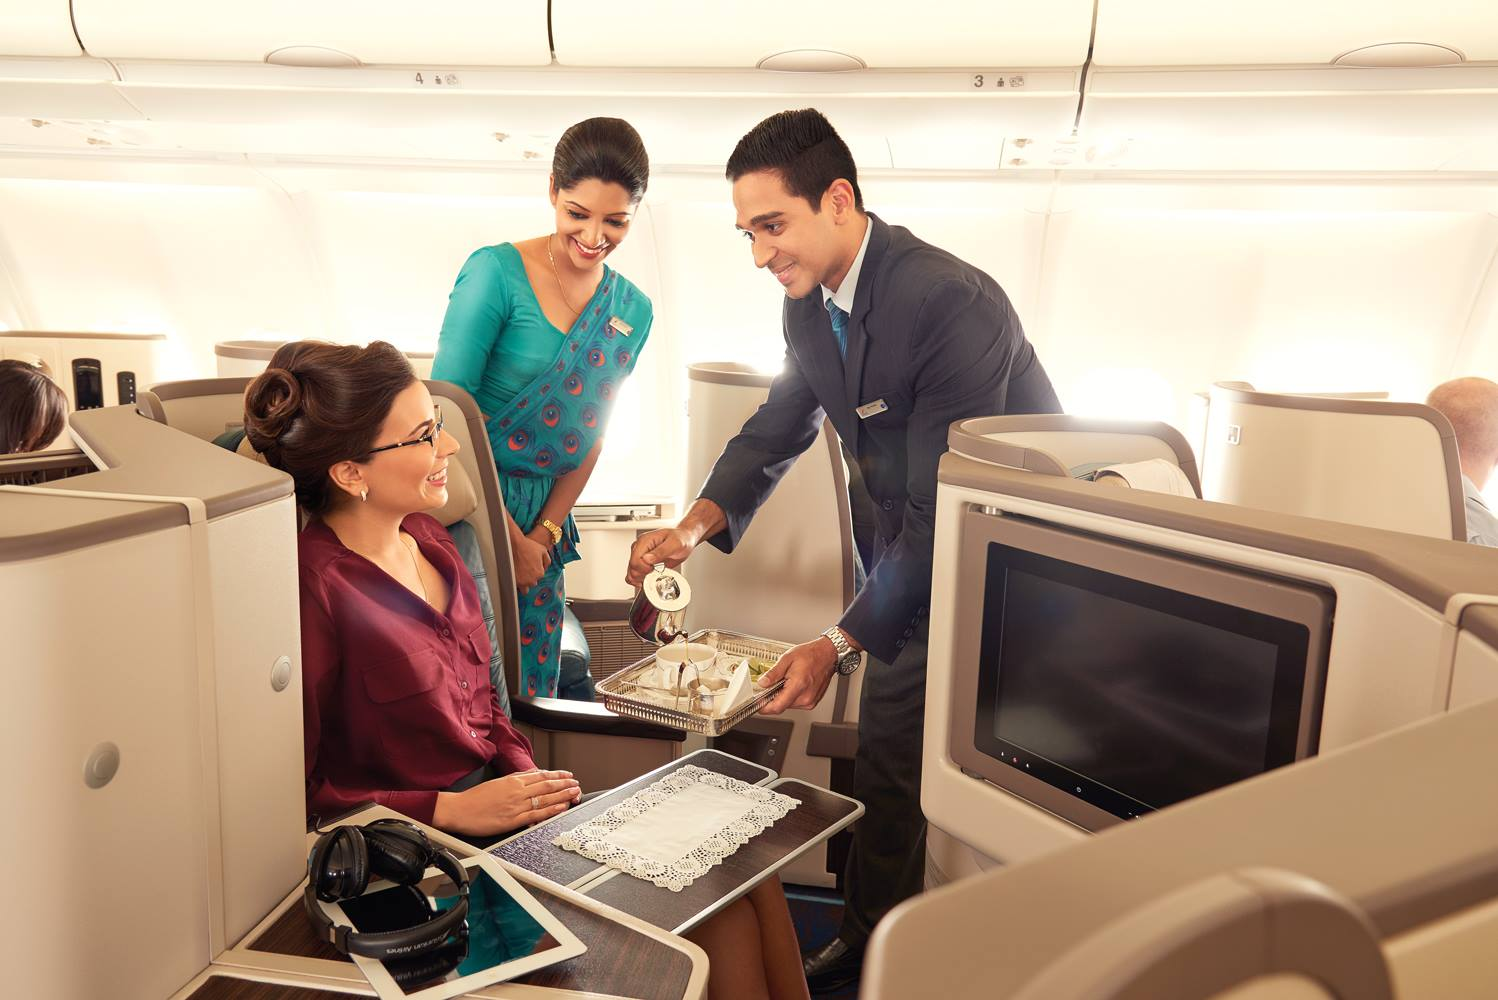 sri lankan A330-300 business class